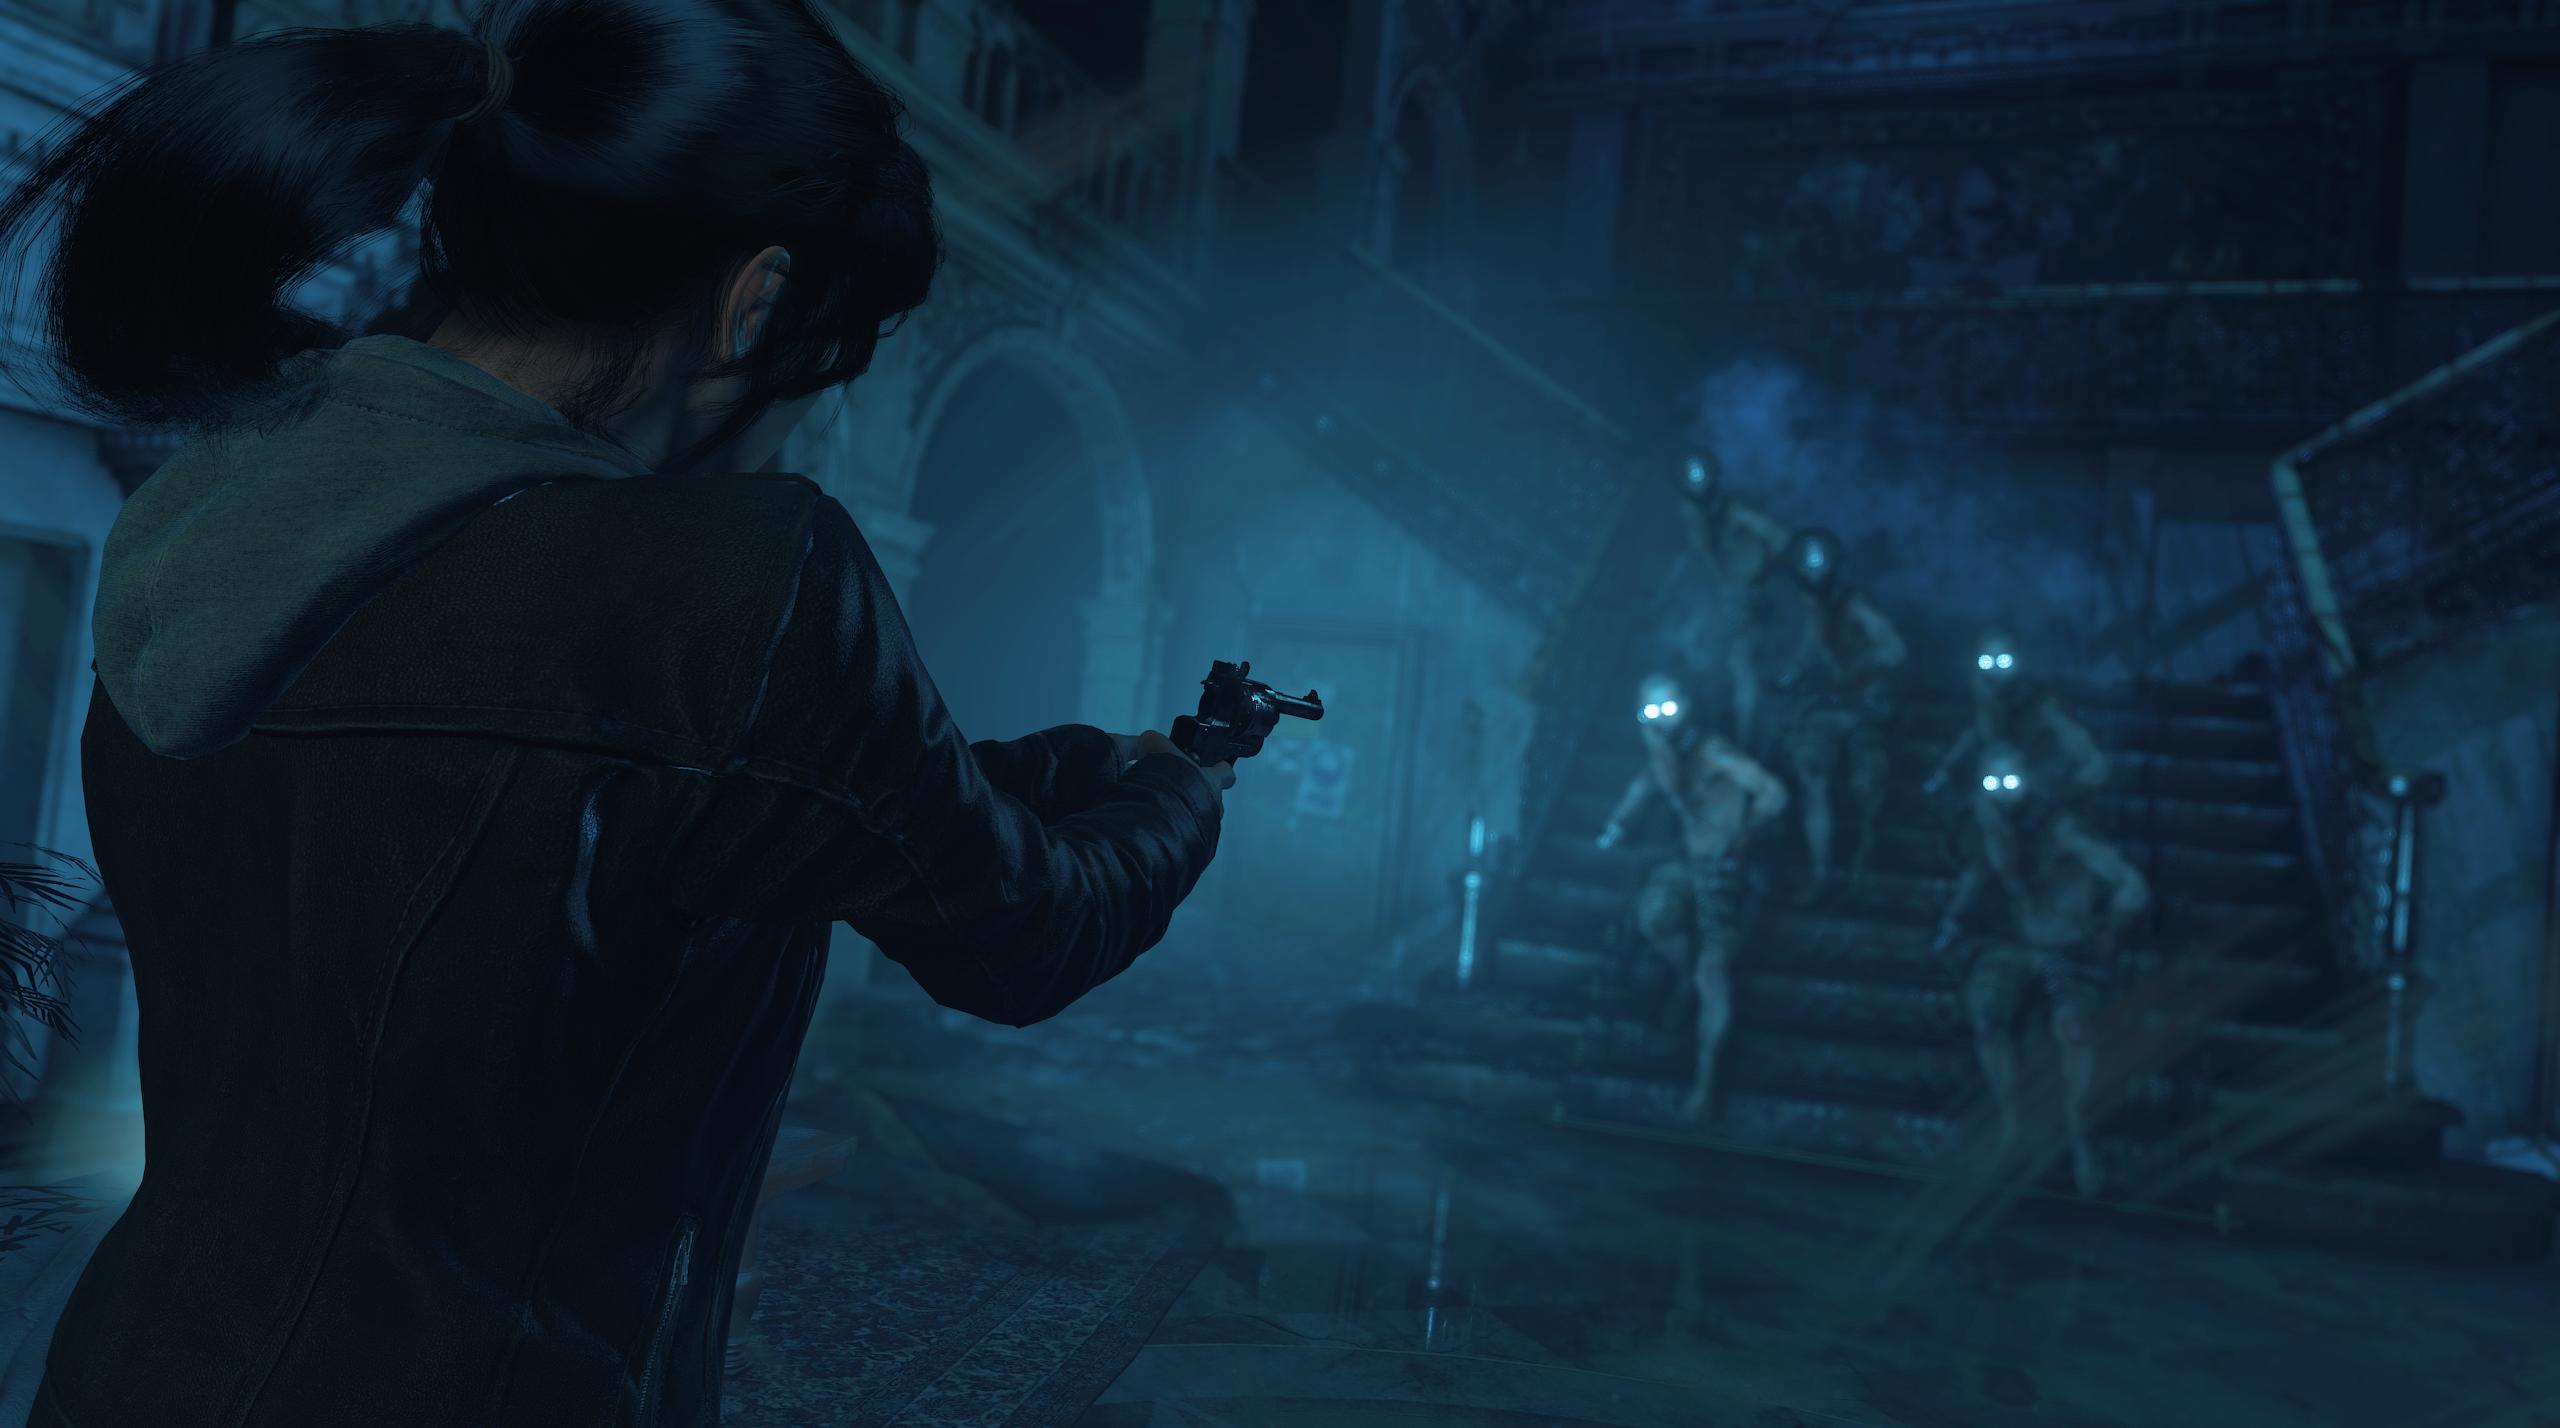 Rise Of The Tomb Raider Tokyo Game Show 2016 Trailer Nova Crystallis Sony Ps4 Square Enix Has Released A New For Ahead This Week Due Out Next Month On Playstation 4